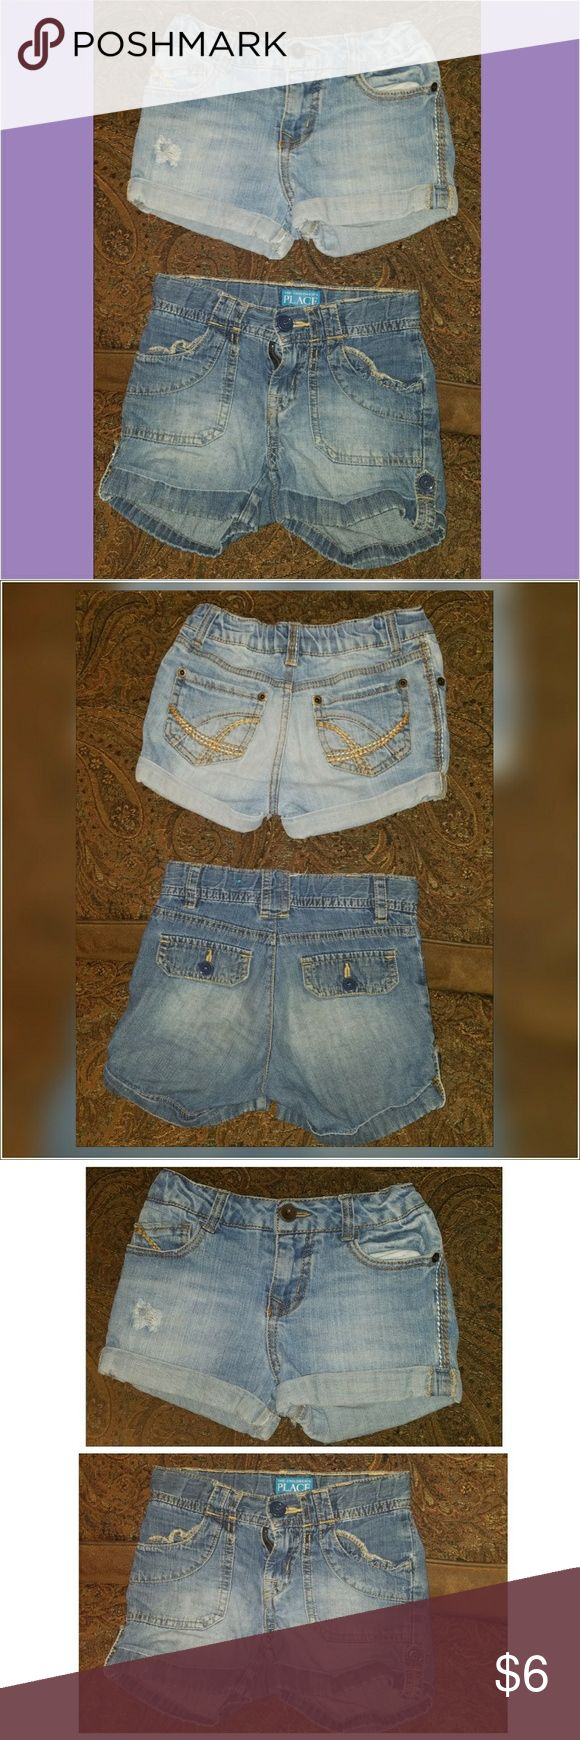 """Bundle of 2 Girls Denim  Jean Shorts 6 & 6/6x 2 Pairs Of Girls Jean Shorts?  *The darker pair is from Children's Place, size 6. Made of soft, lightweight cotton. Button tab at bottom of leg allows you to roll them up or down.?  *Lighter pair is Cherokee brand size 6/6x. Adjustable tabs inside for a perfect fit. Have an intentional vintage look with some """"frayed"""" areas.?  Both pair of shorts is in Good pre-owned condition with no stains or defects. May have some stray threads, etc from normal…"""